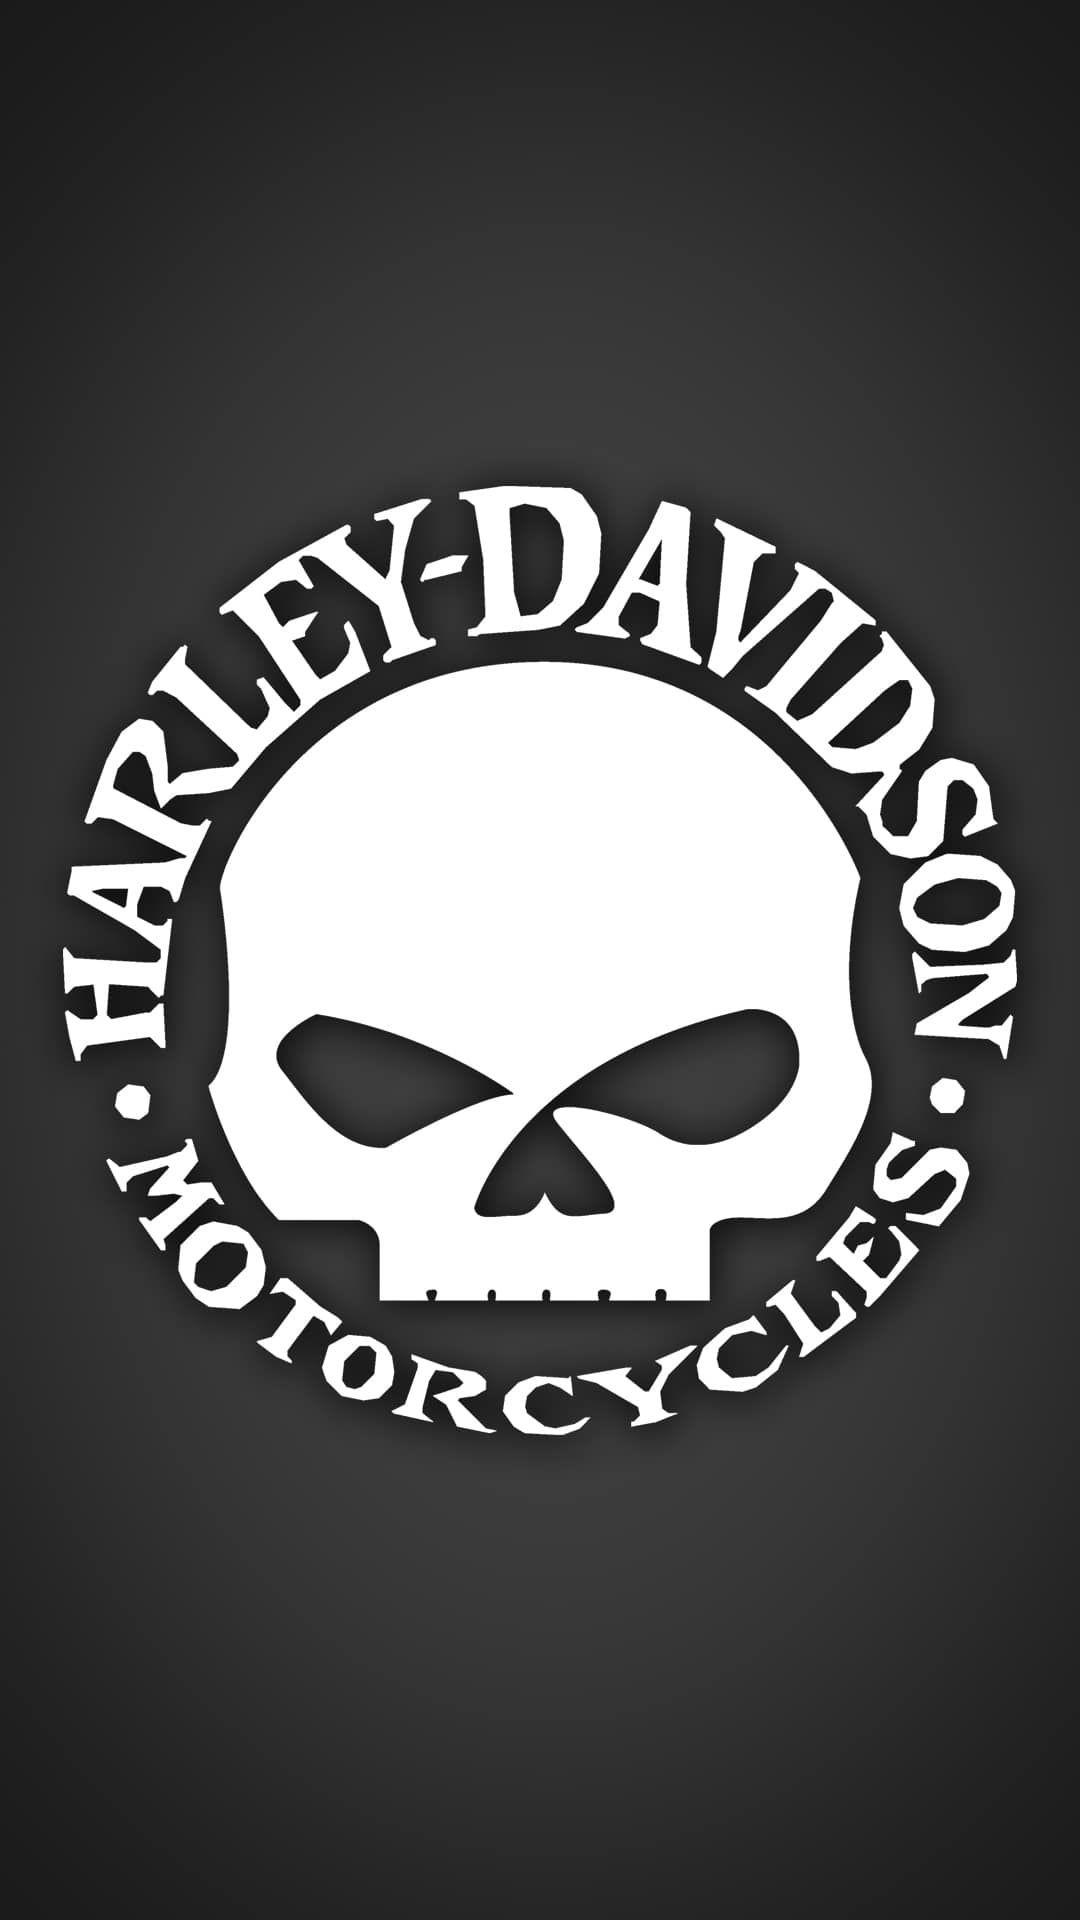 Wallpaper Harley Davidson Iron black bike year